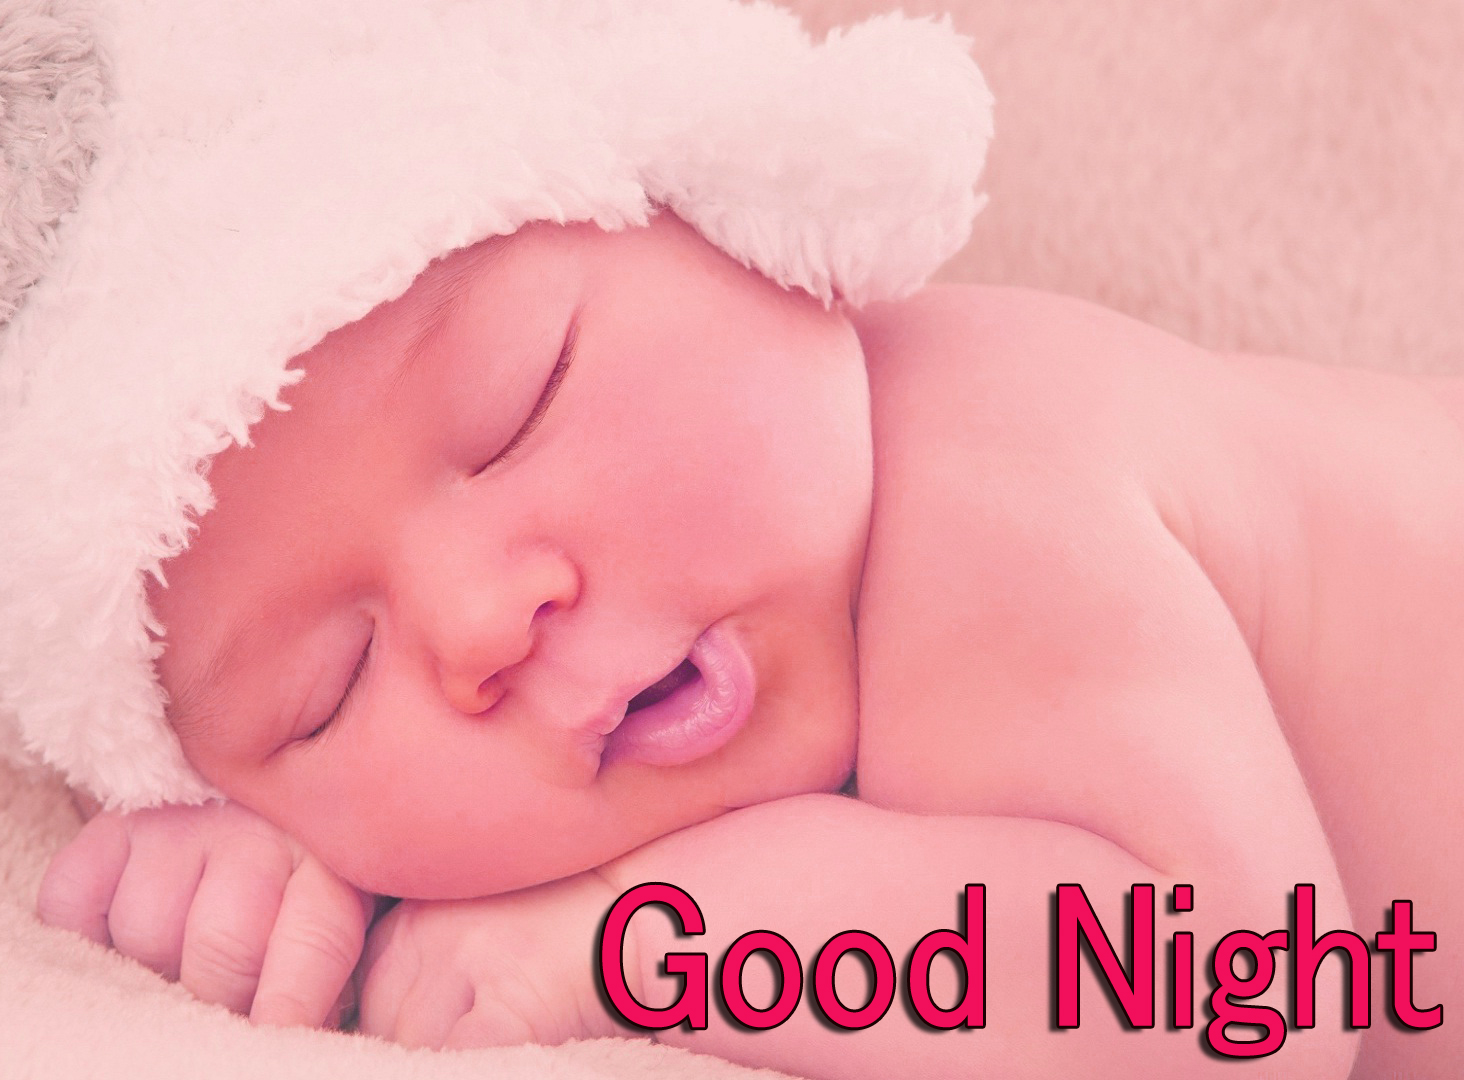 GOOD NIGHT IMAGES WITH CUTE BABY BOYS & GIRLS WALLPAPER PICTURES DOWNLOAD